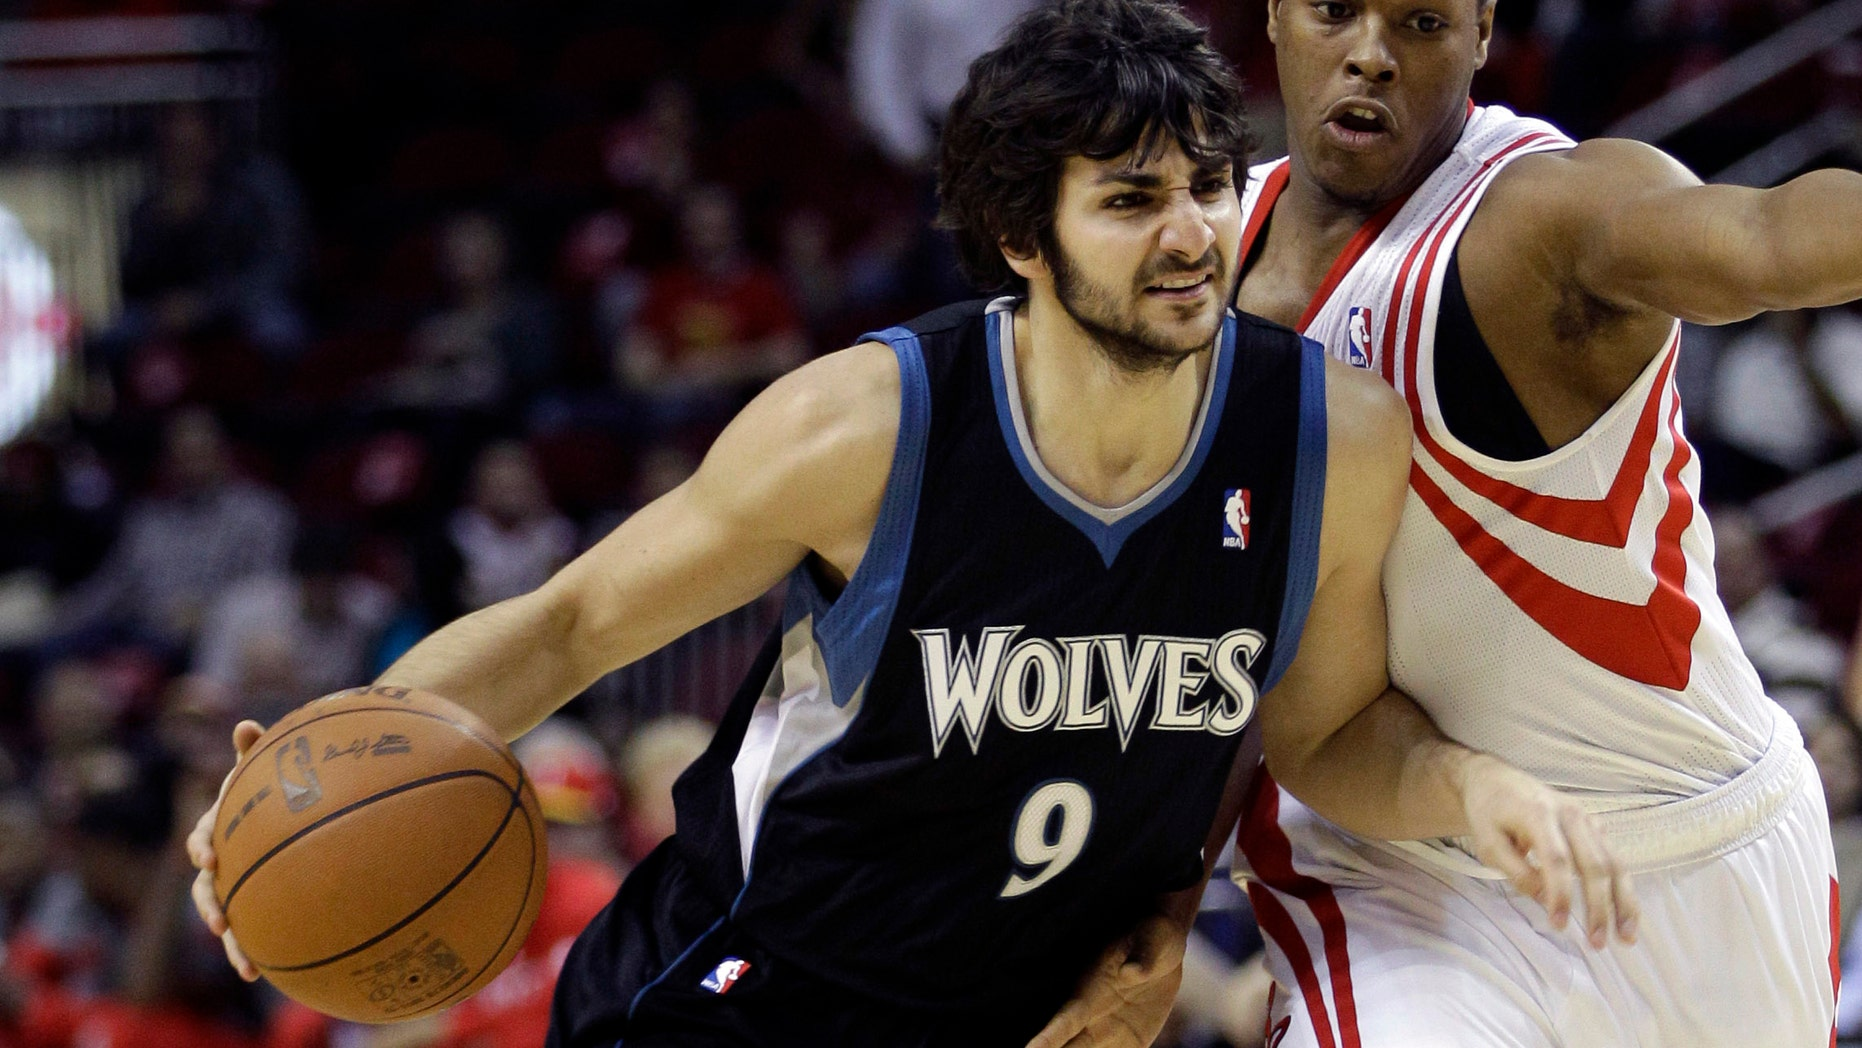 Minnesota Timberwolves' Ricky Rubio drives toward the basket as Houston Rockets' Kyle Lowry, right, defends during the first quarter of an NBA basketball game on Friday in Houston. (AP Photo/David J. Phillip)